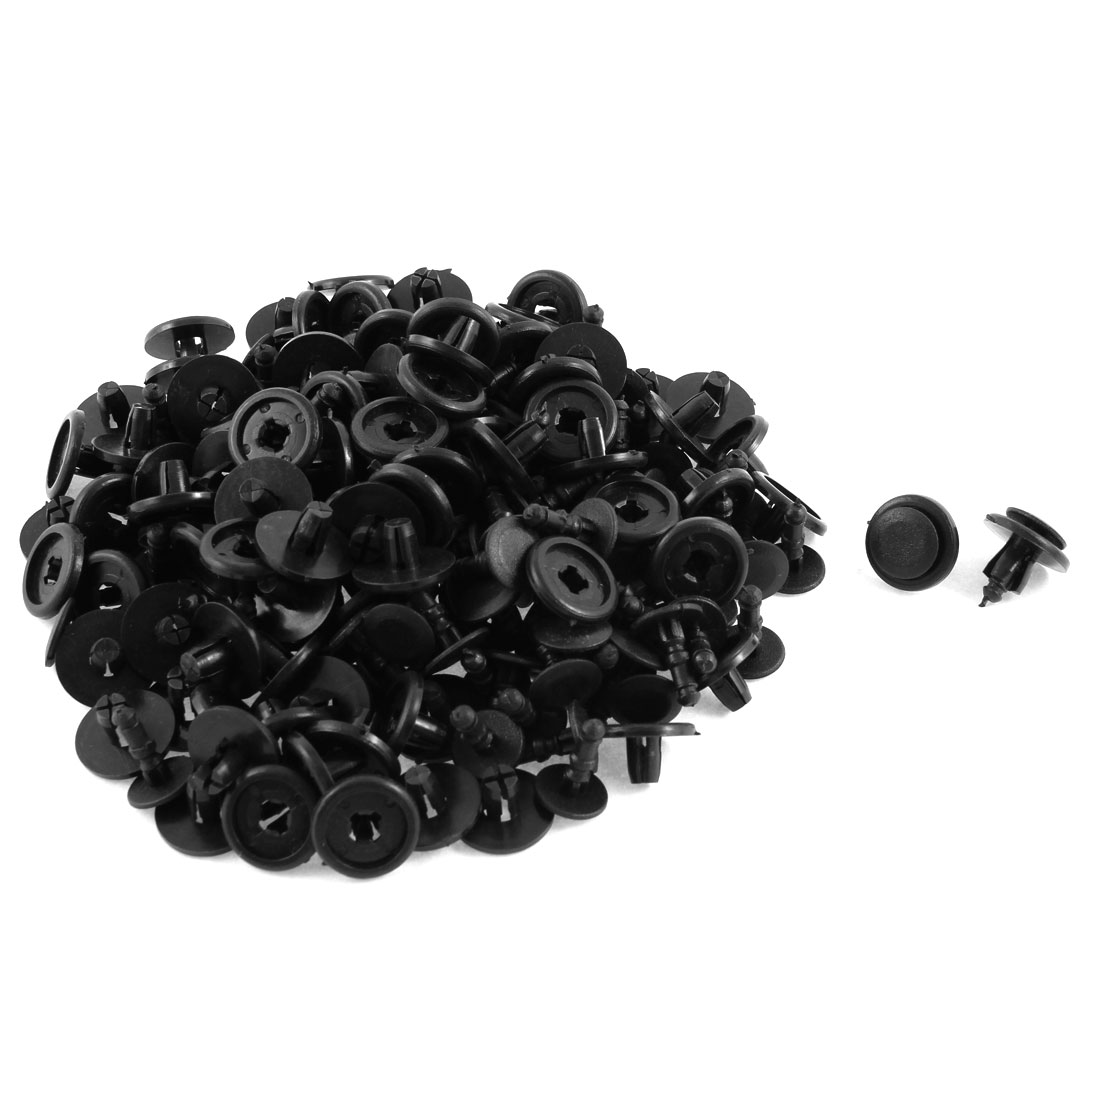 100 Pcs Black Plastic Rivet Trim Fastener Retainer Clips 8mm x 10mm x 20mm